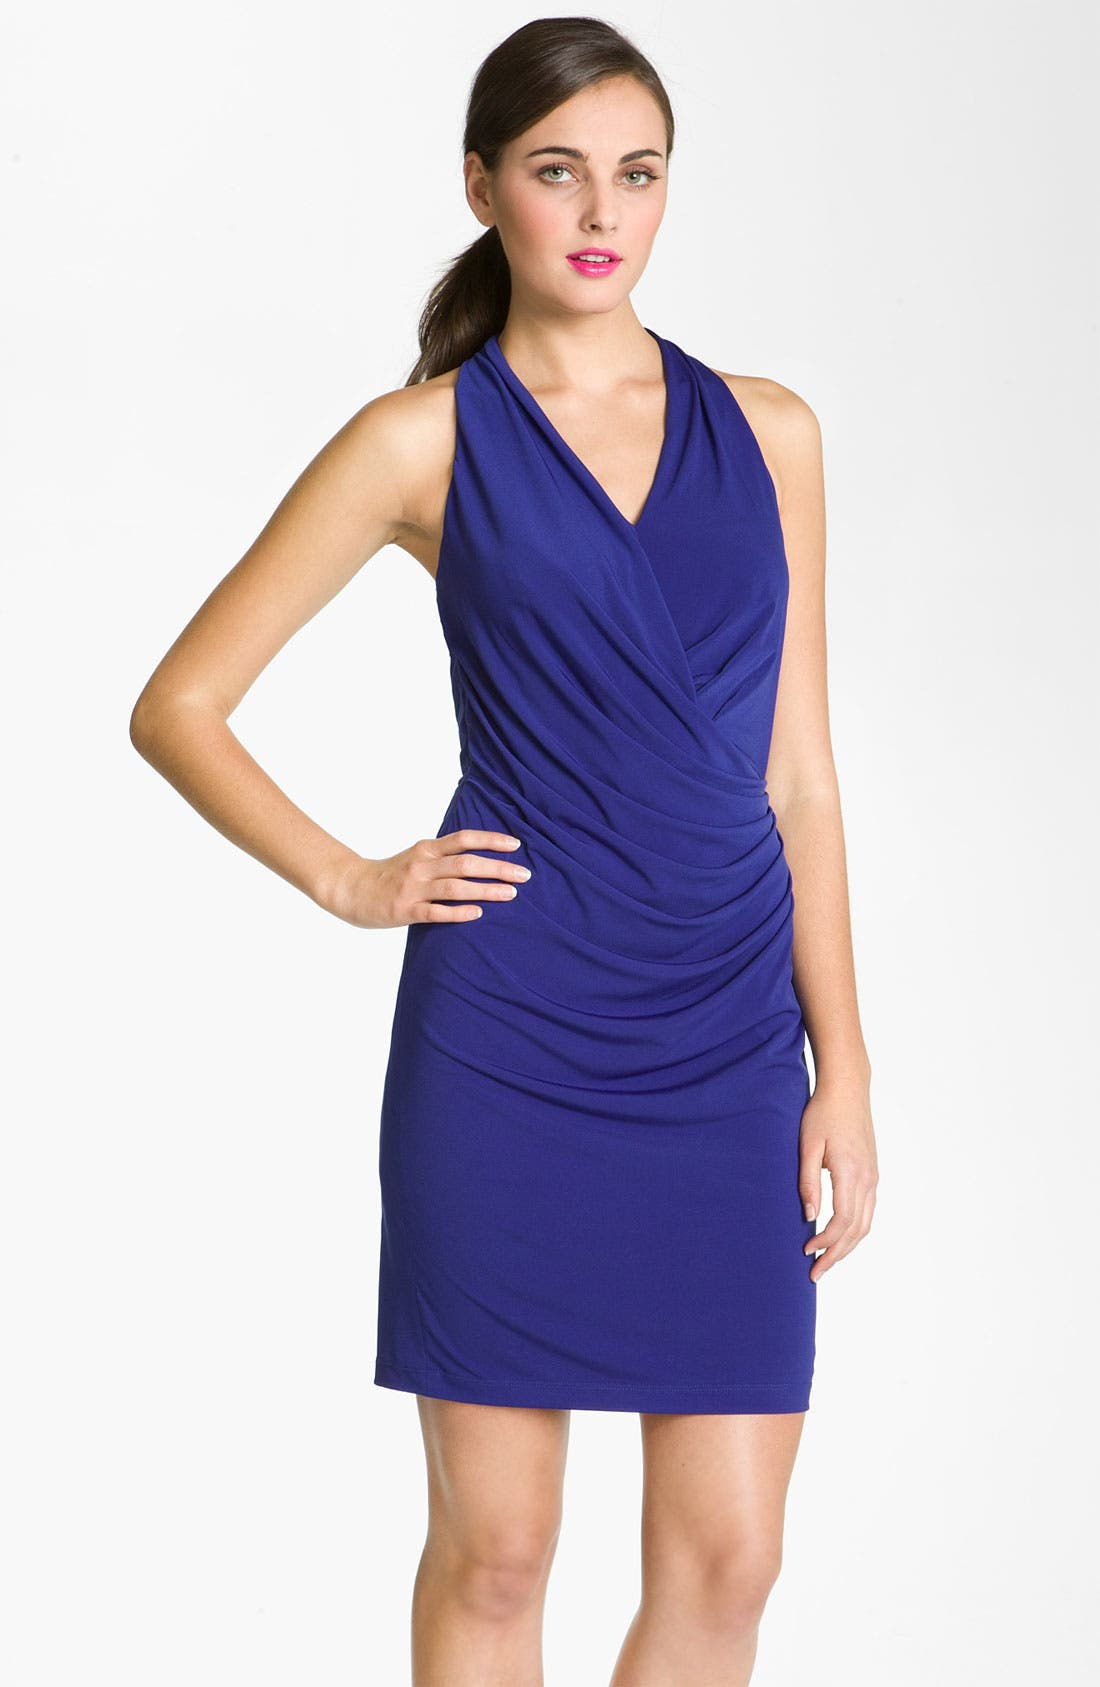 Main Image - Suzi Chin for Maggy Boutique Ruched Racer Back Jersey Dress